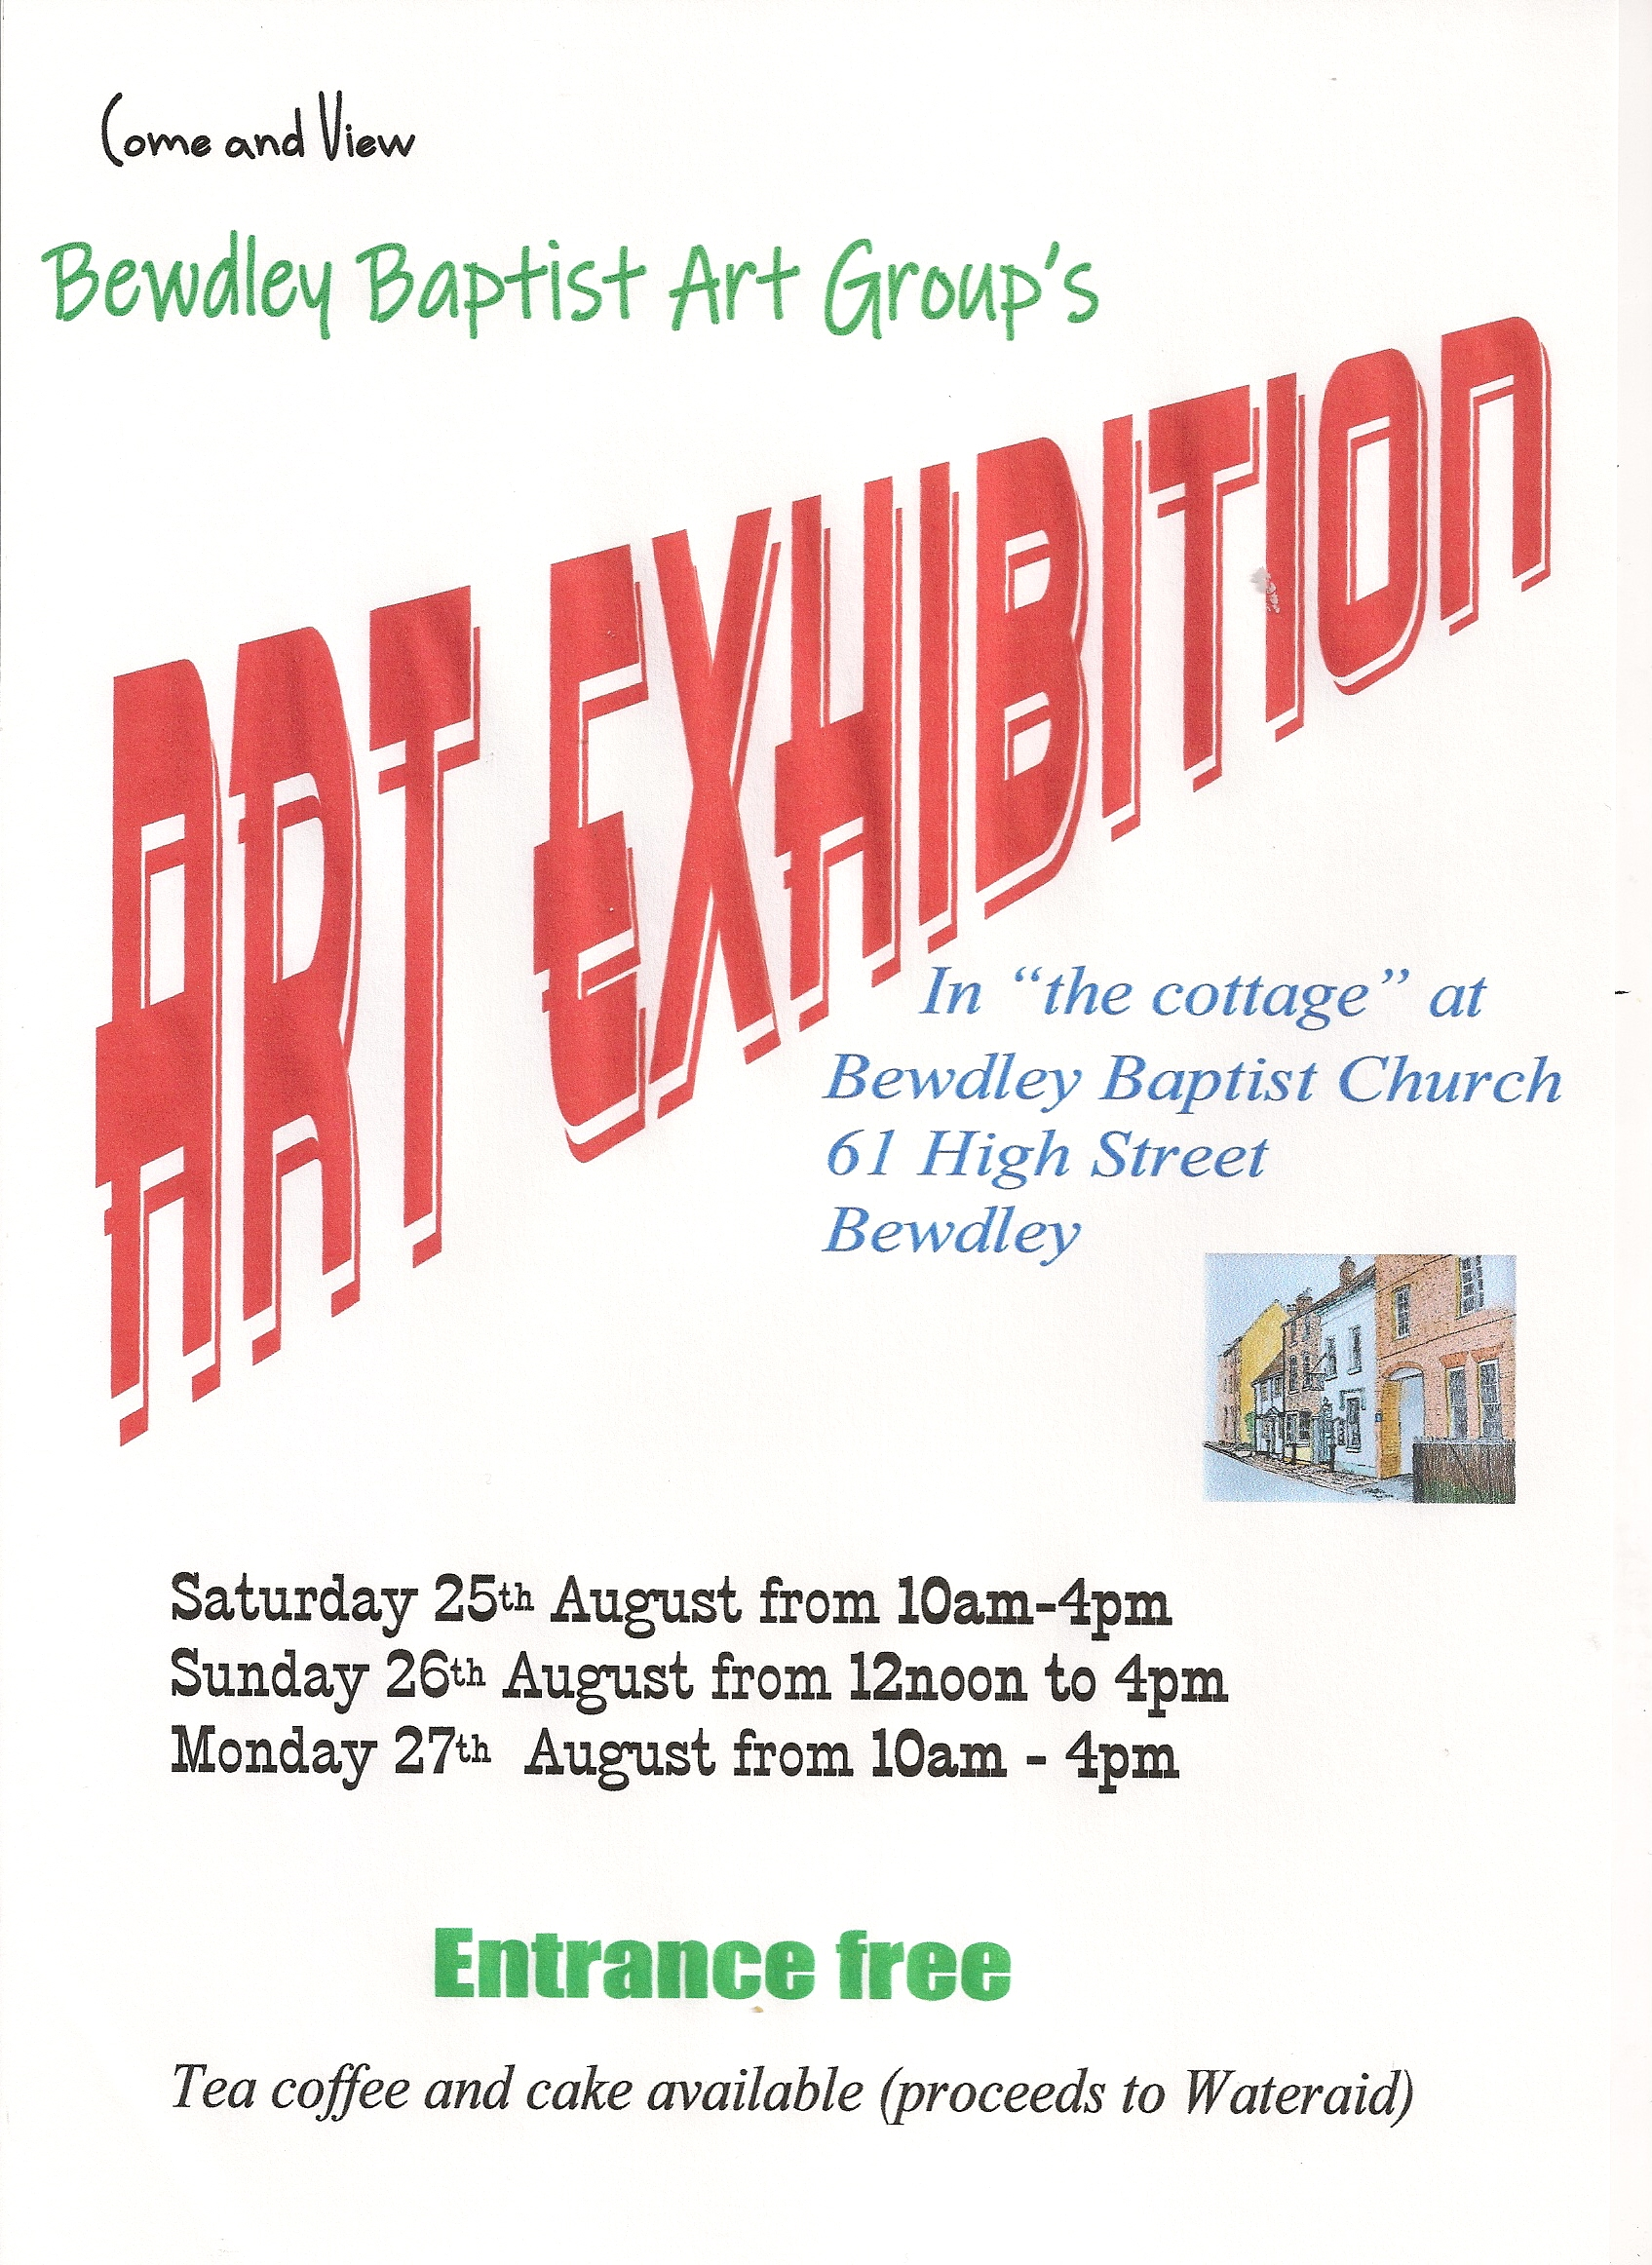 Bewdley Baptist Art Group Art Exhibition